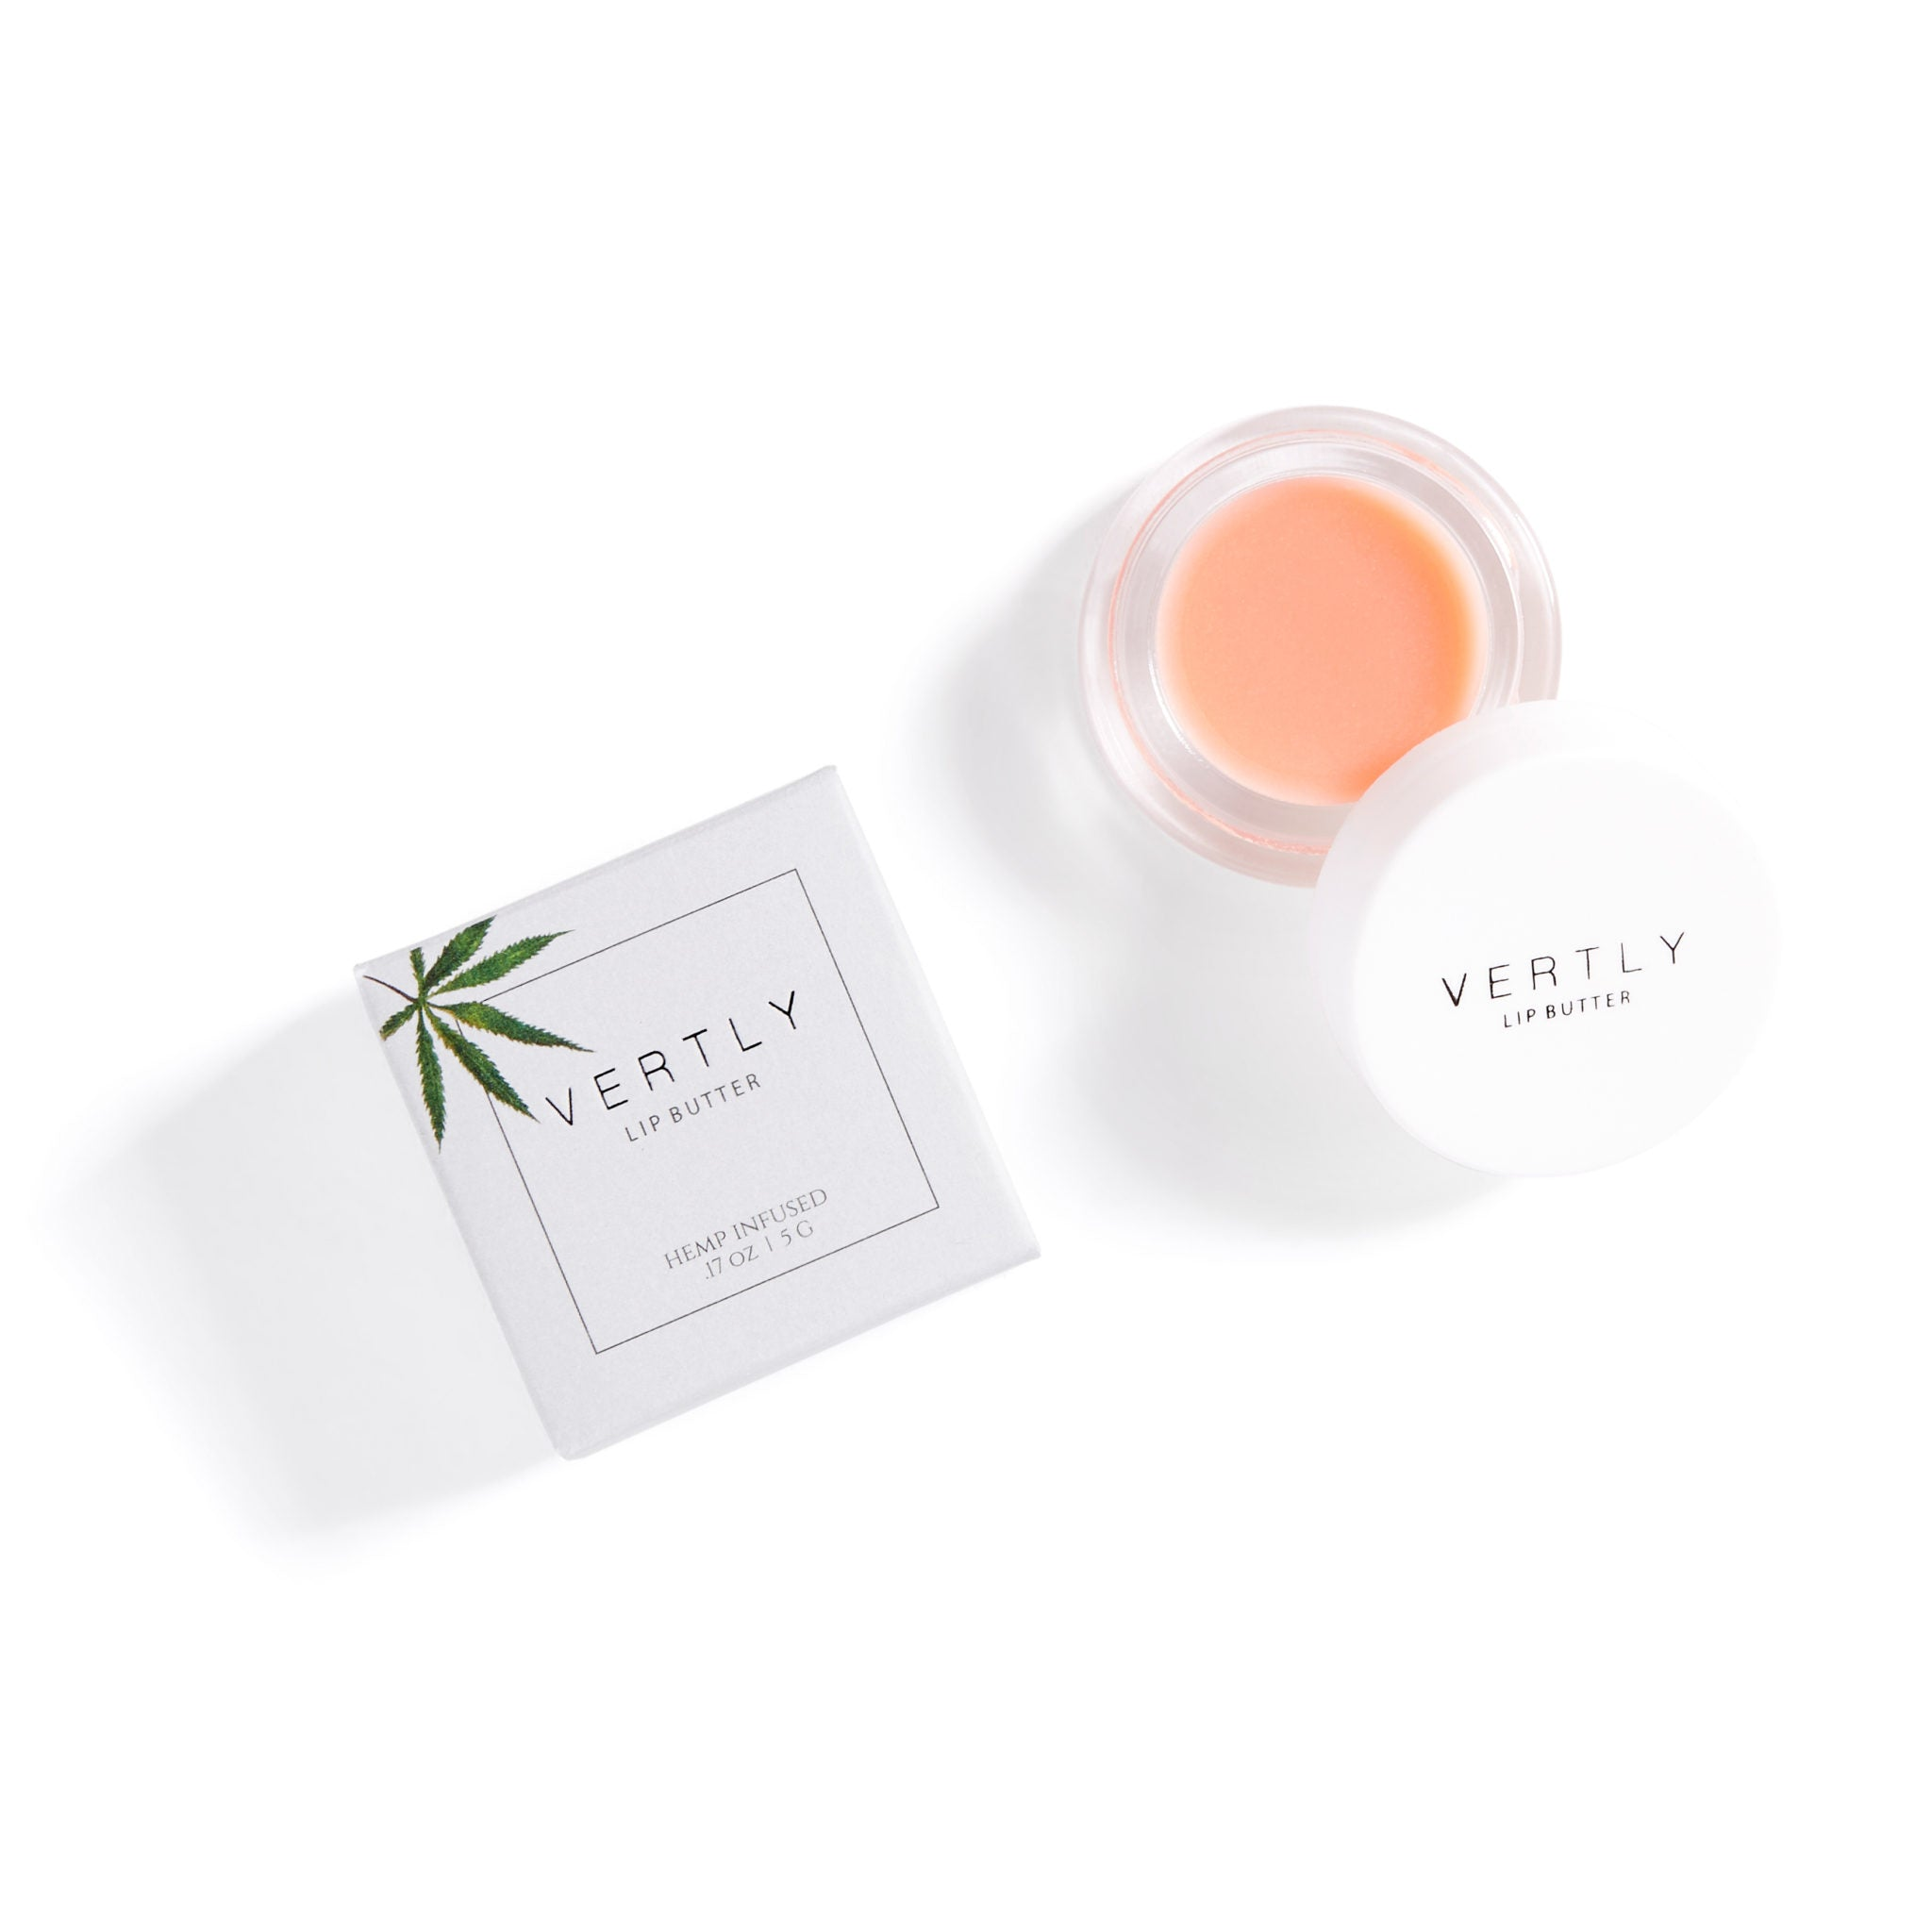 Vertly CBD Lip Balm